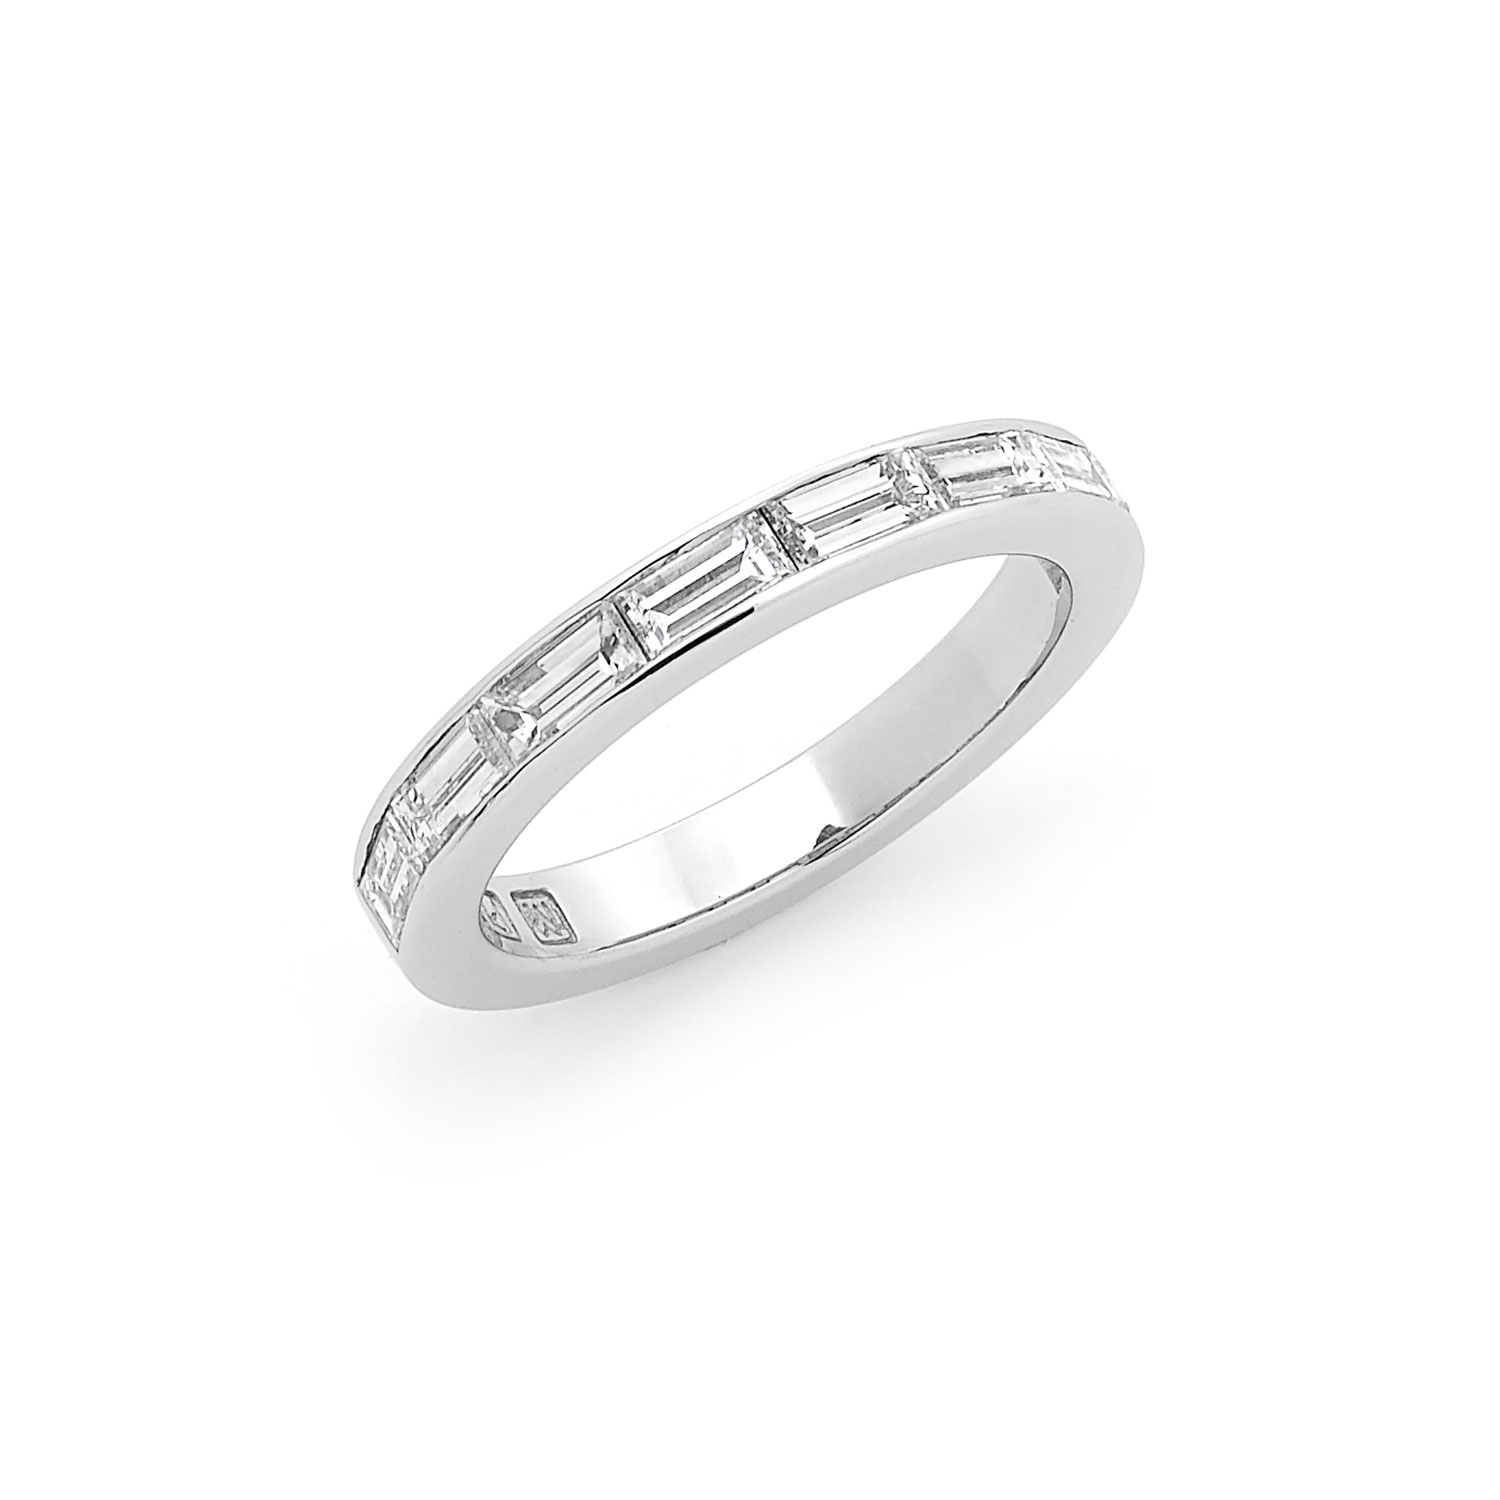 Baguette Cut Diamond Wedding Band – Fairfax & Roberts For Best And Newest Channel Set Round Brilliant And Baguette Cut Diamond Wedding Bands (View 8 of 25)